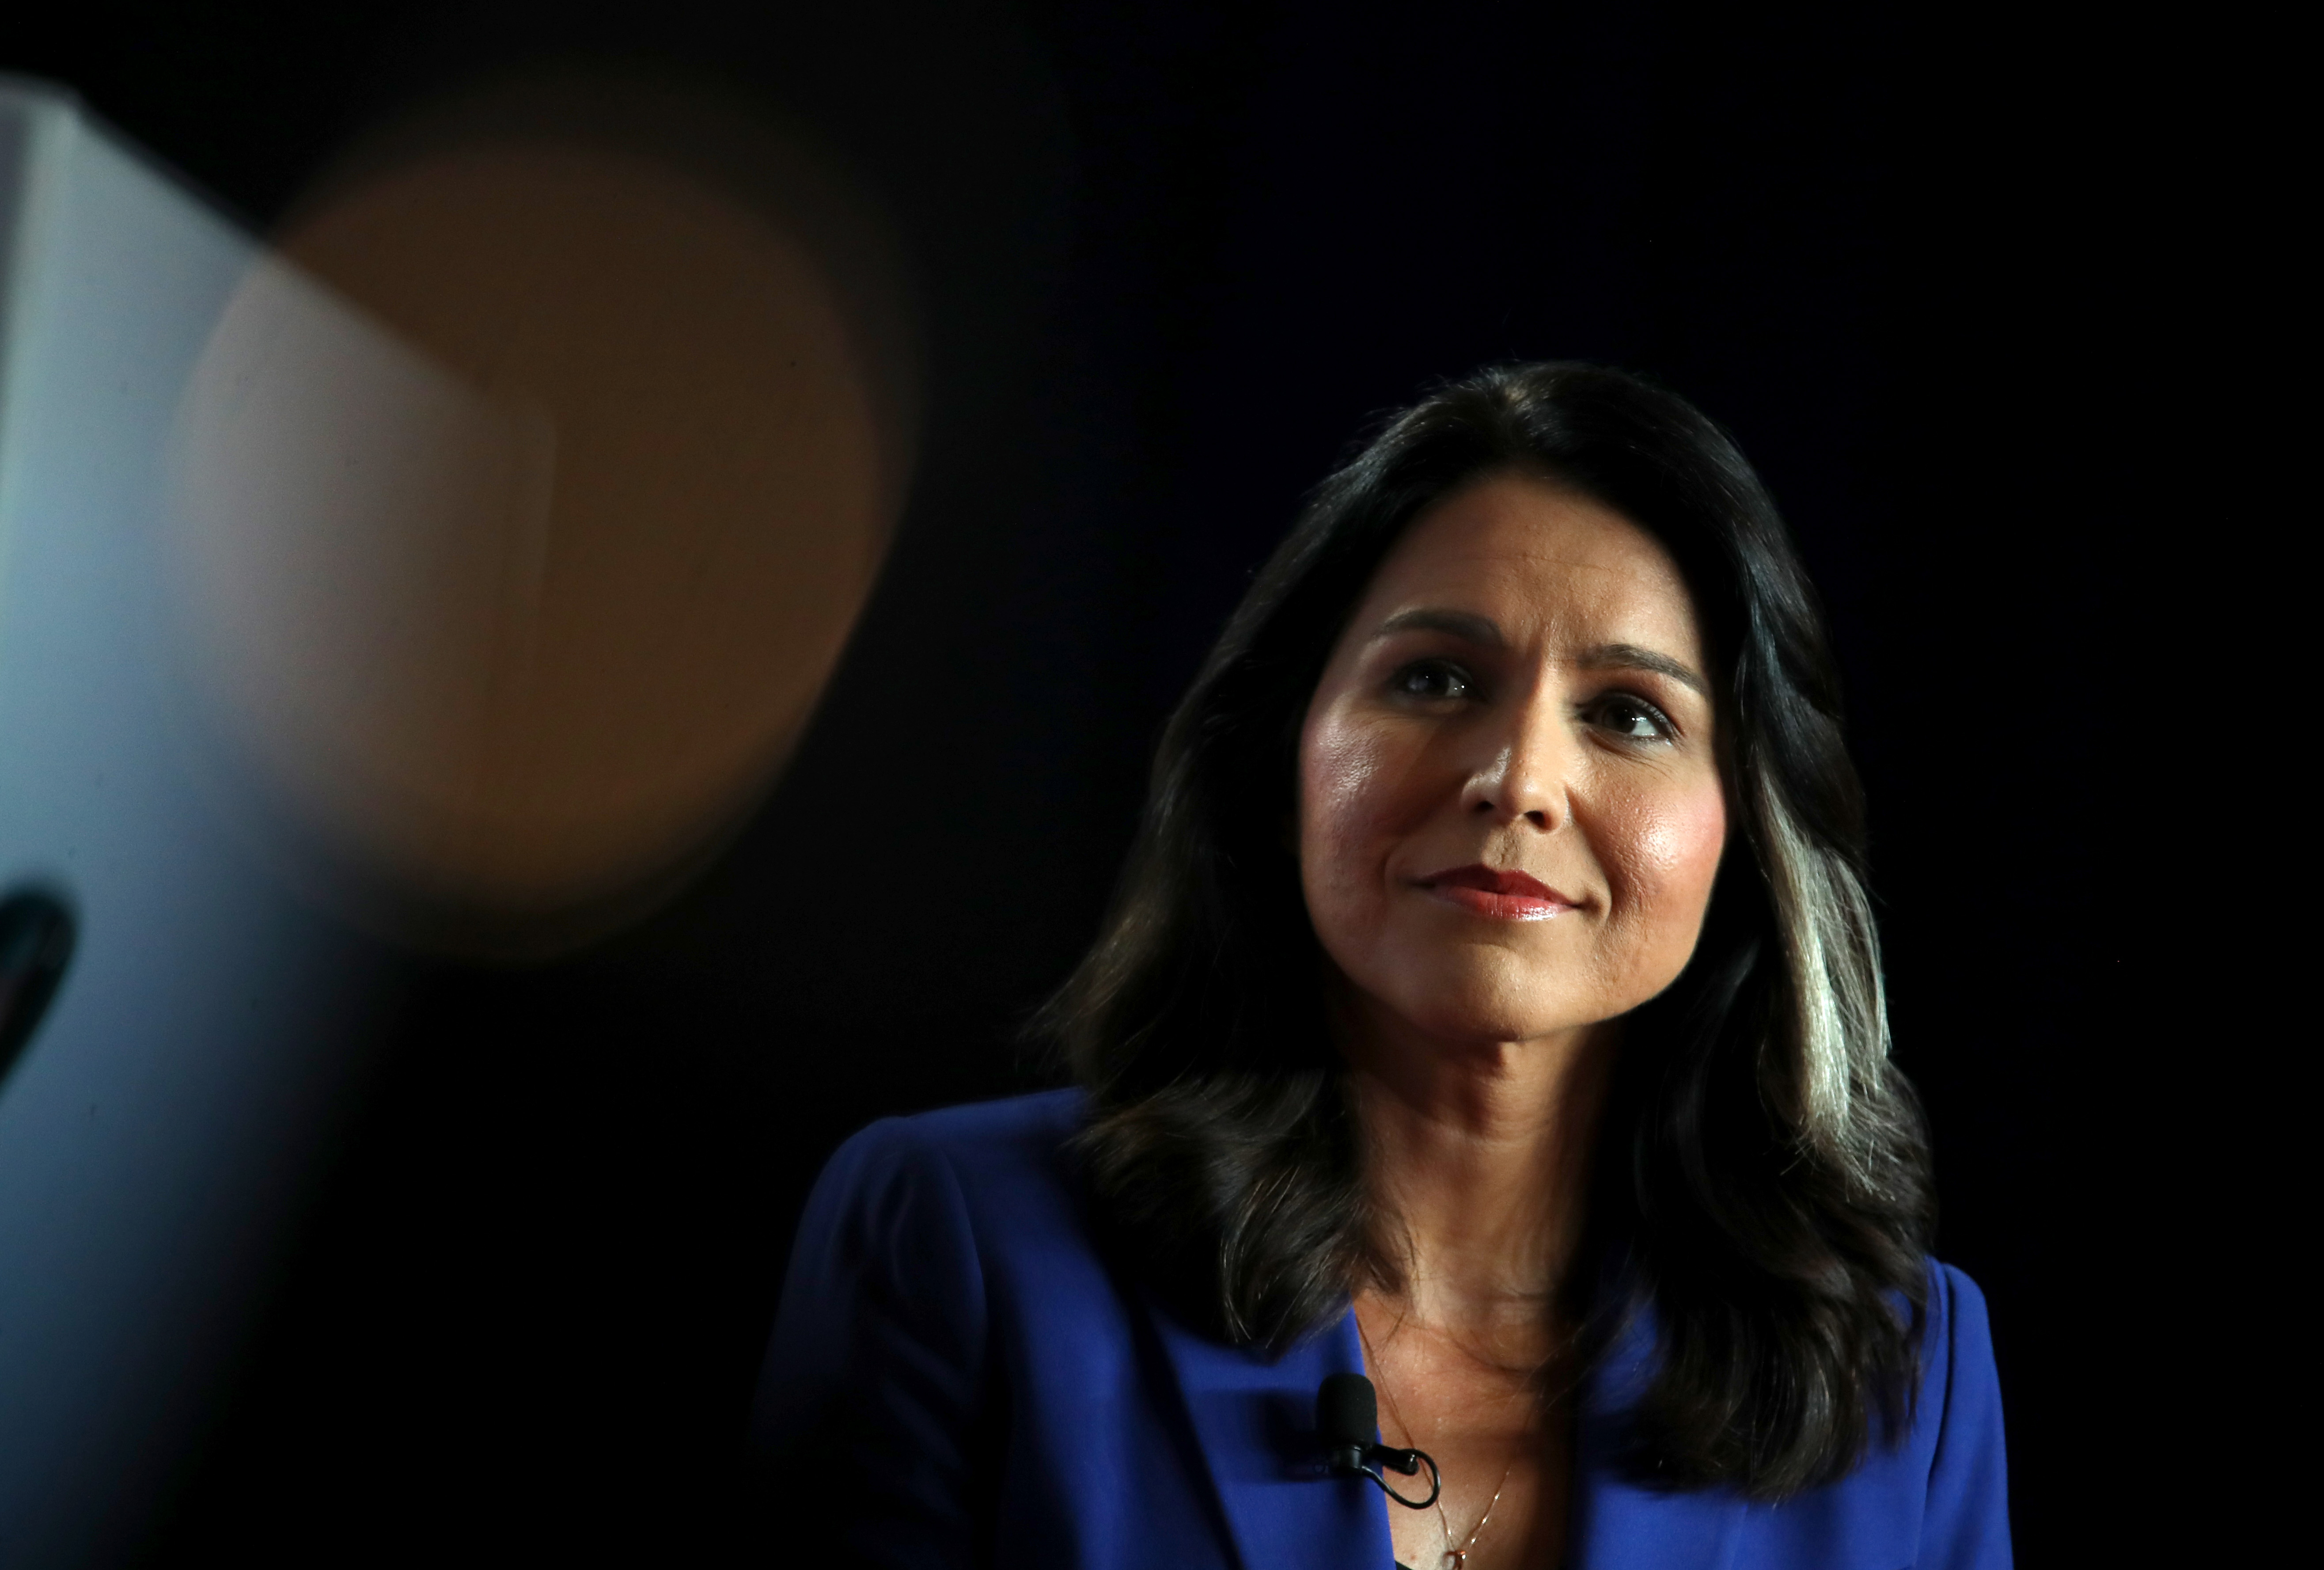 Democratic presidential candidate U.S. Rep. Tulsi Gabbard (D-HI) speaks during the AARP and The Des Moines Register Iowa Presidential Candidate Forum on July 17, 2019 in Cedar Rapids, Iowa.